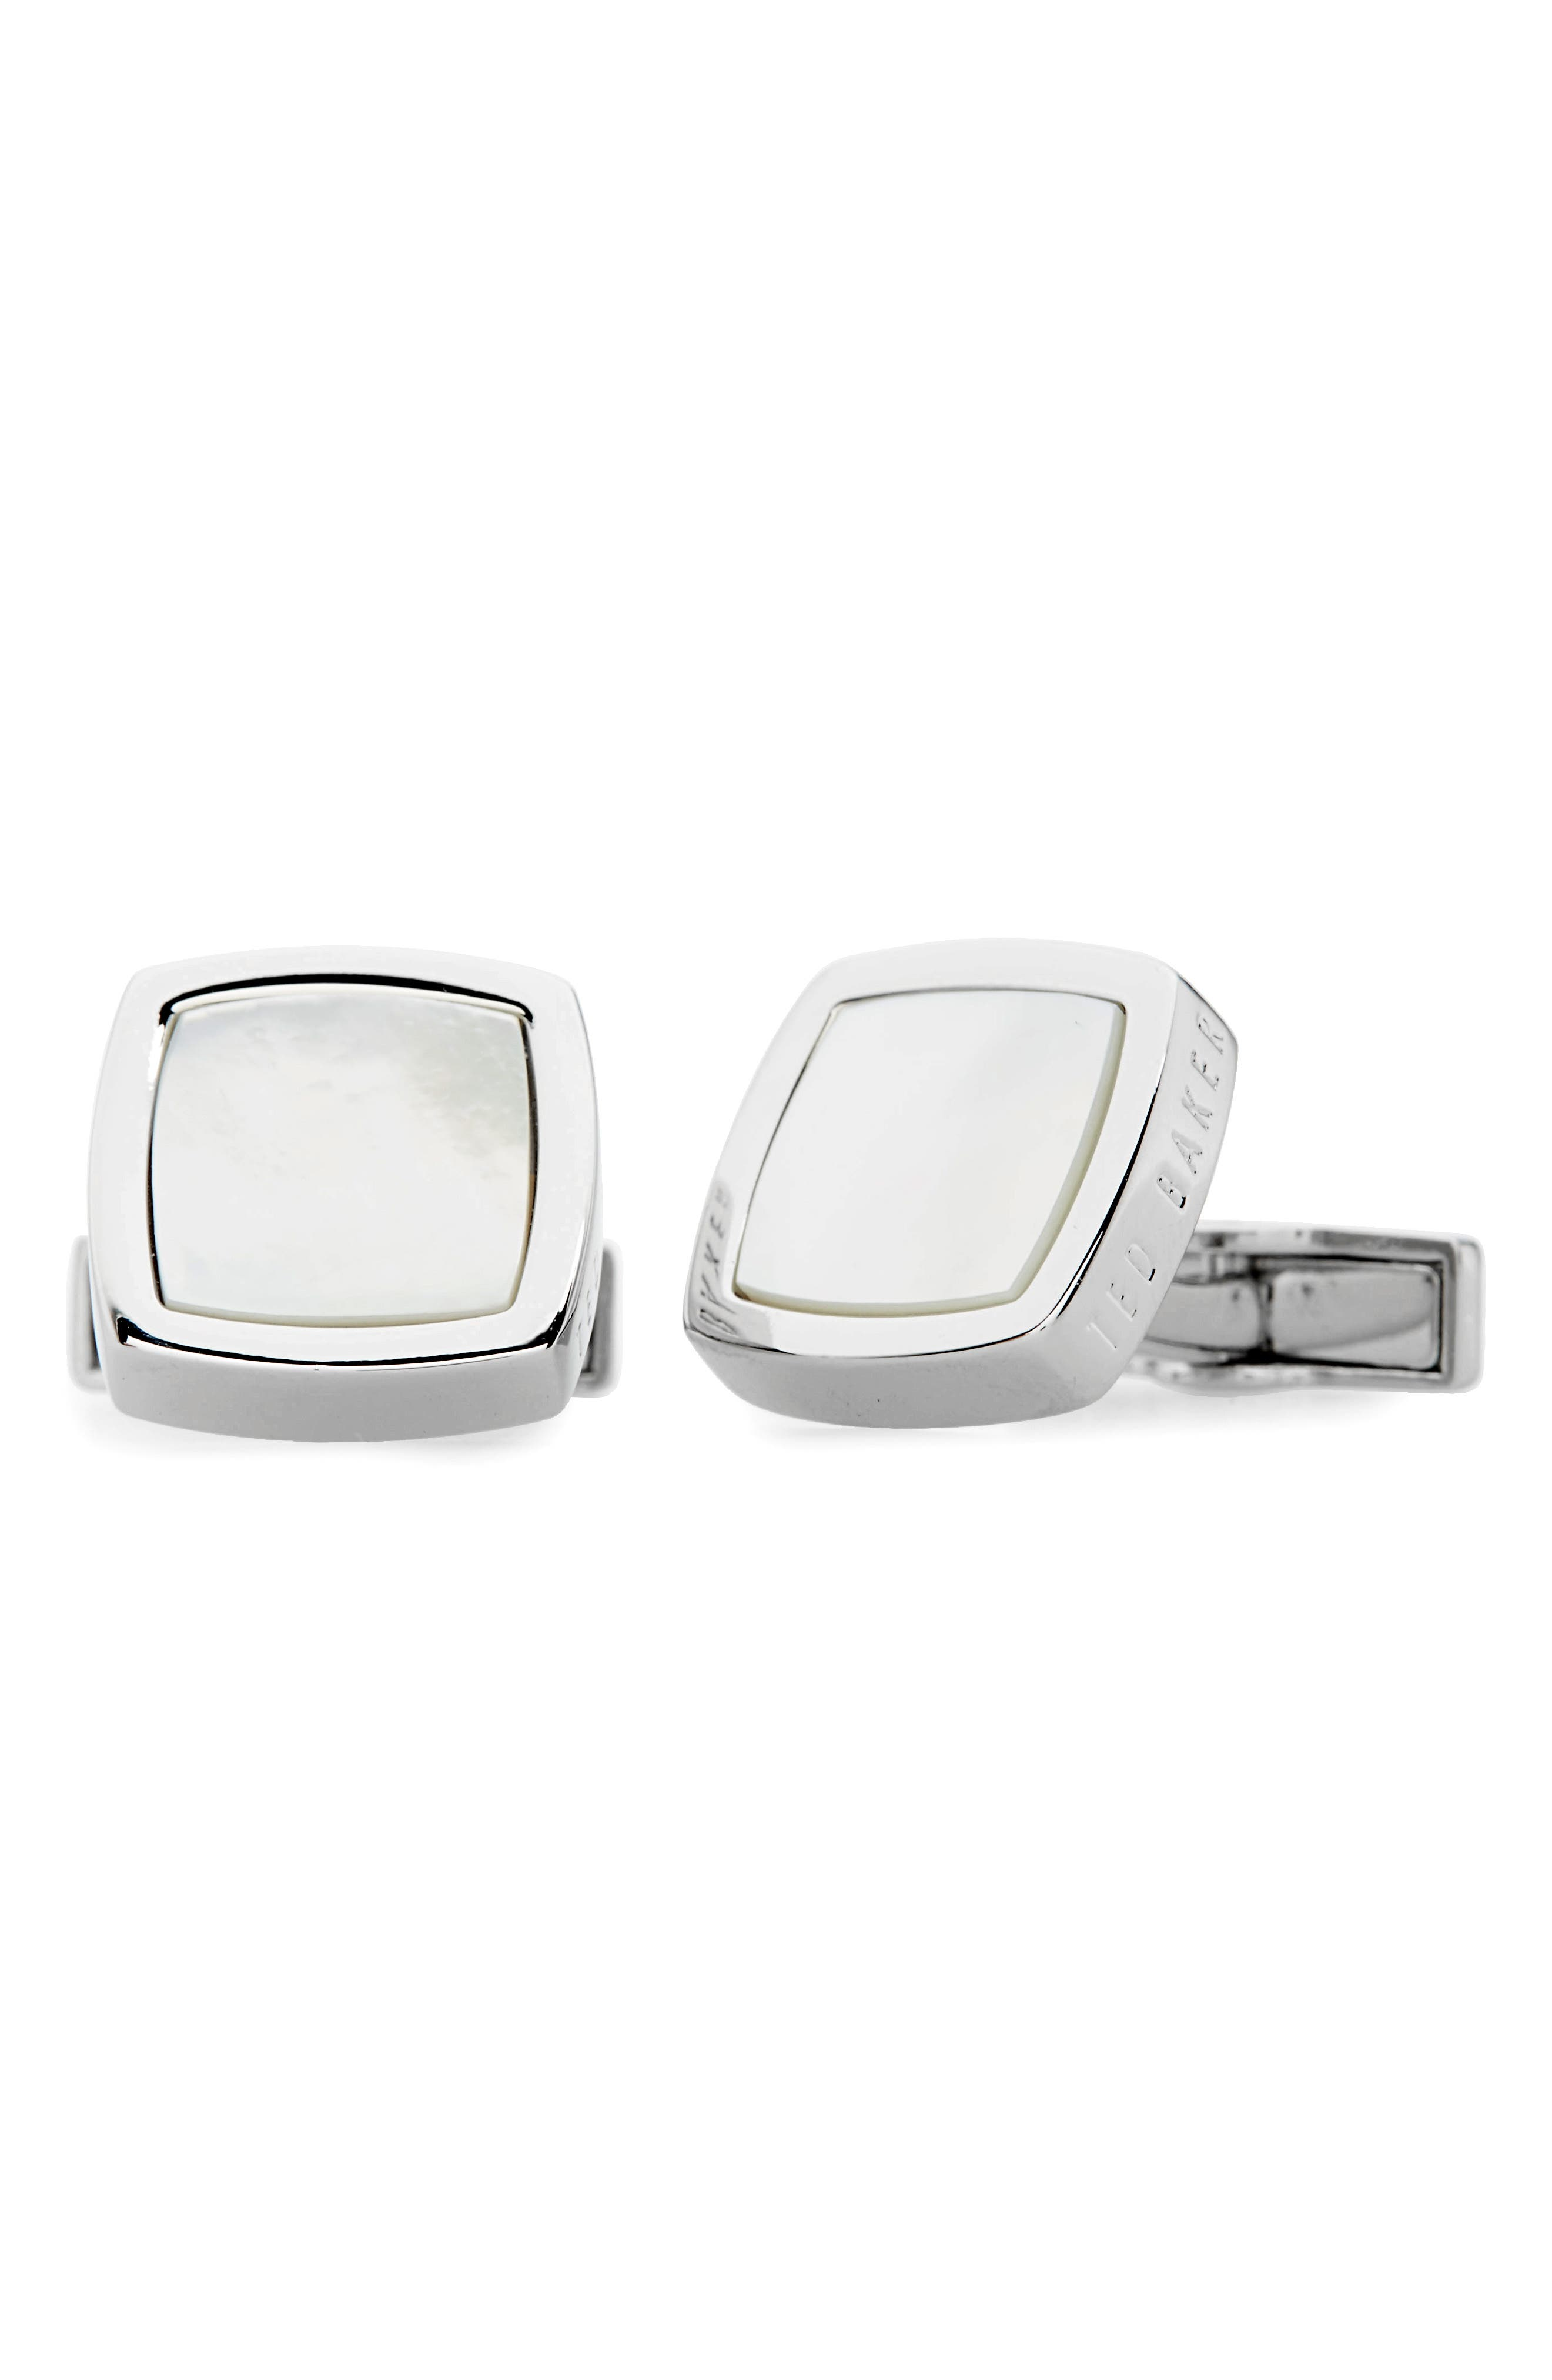 Dedlift Cuff Links,                             Main thumbnail 1, color,                             White